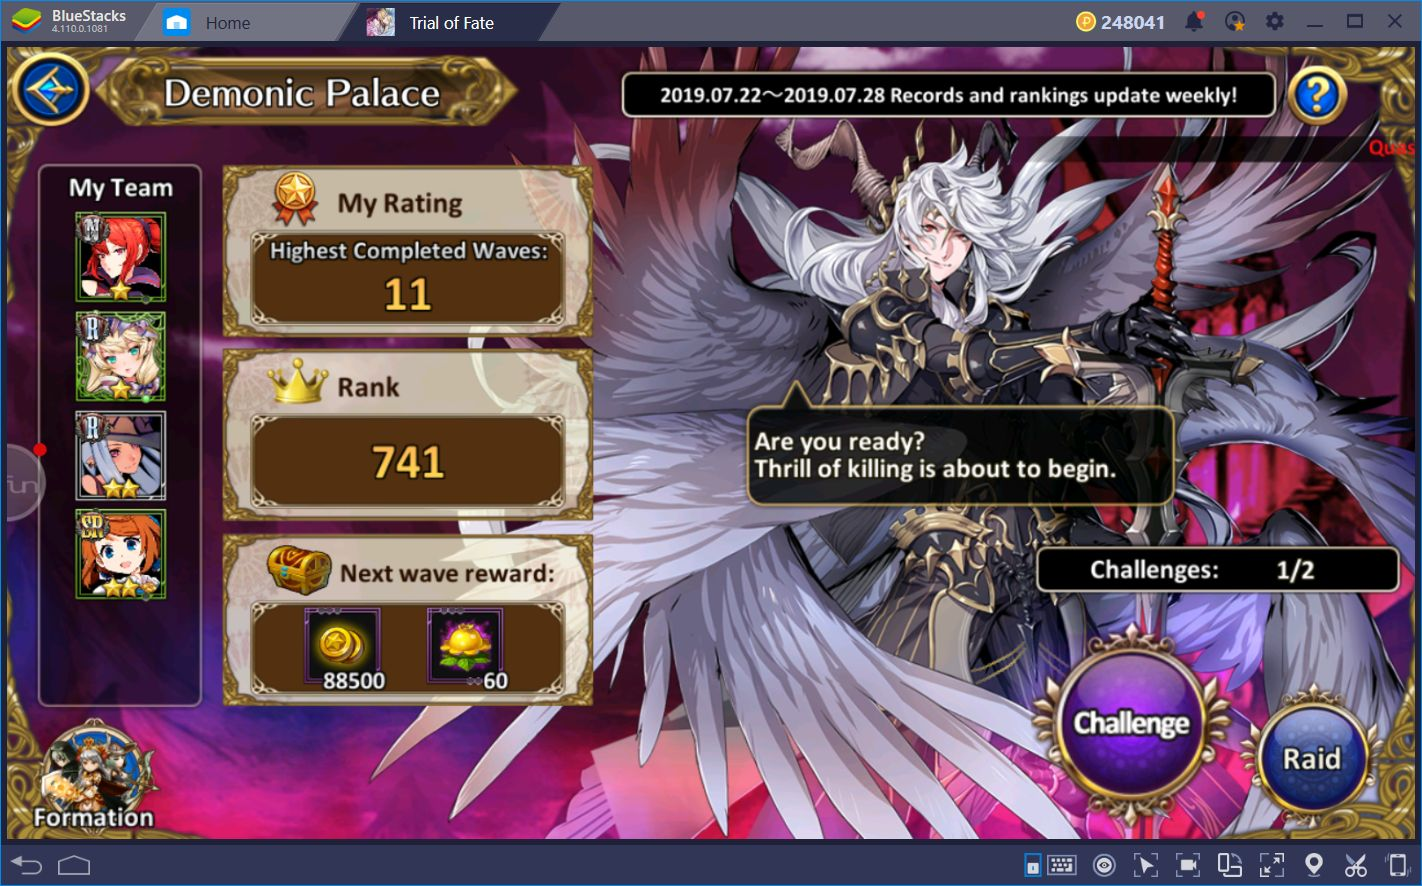 A Guide to Leveling and Upgrading Heroes in Trial of Fate